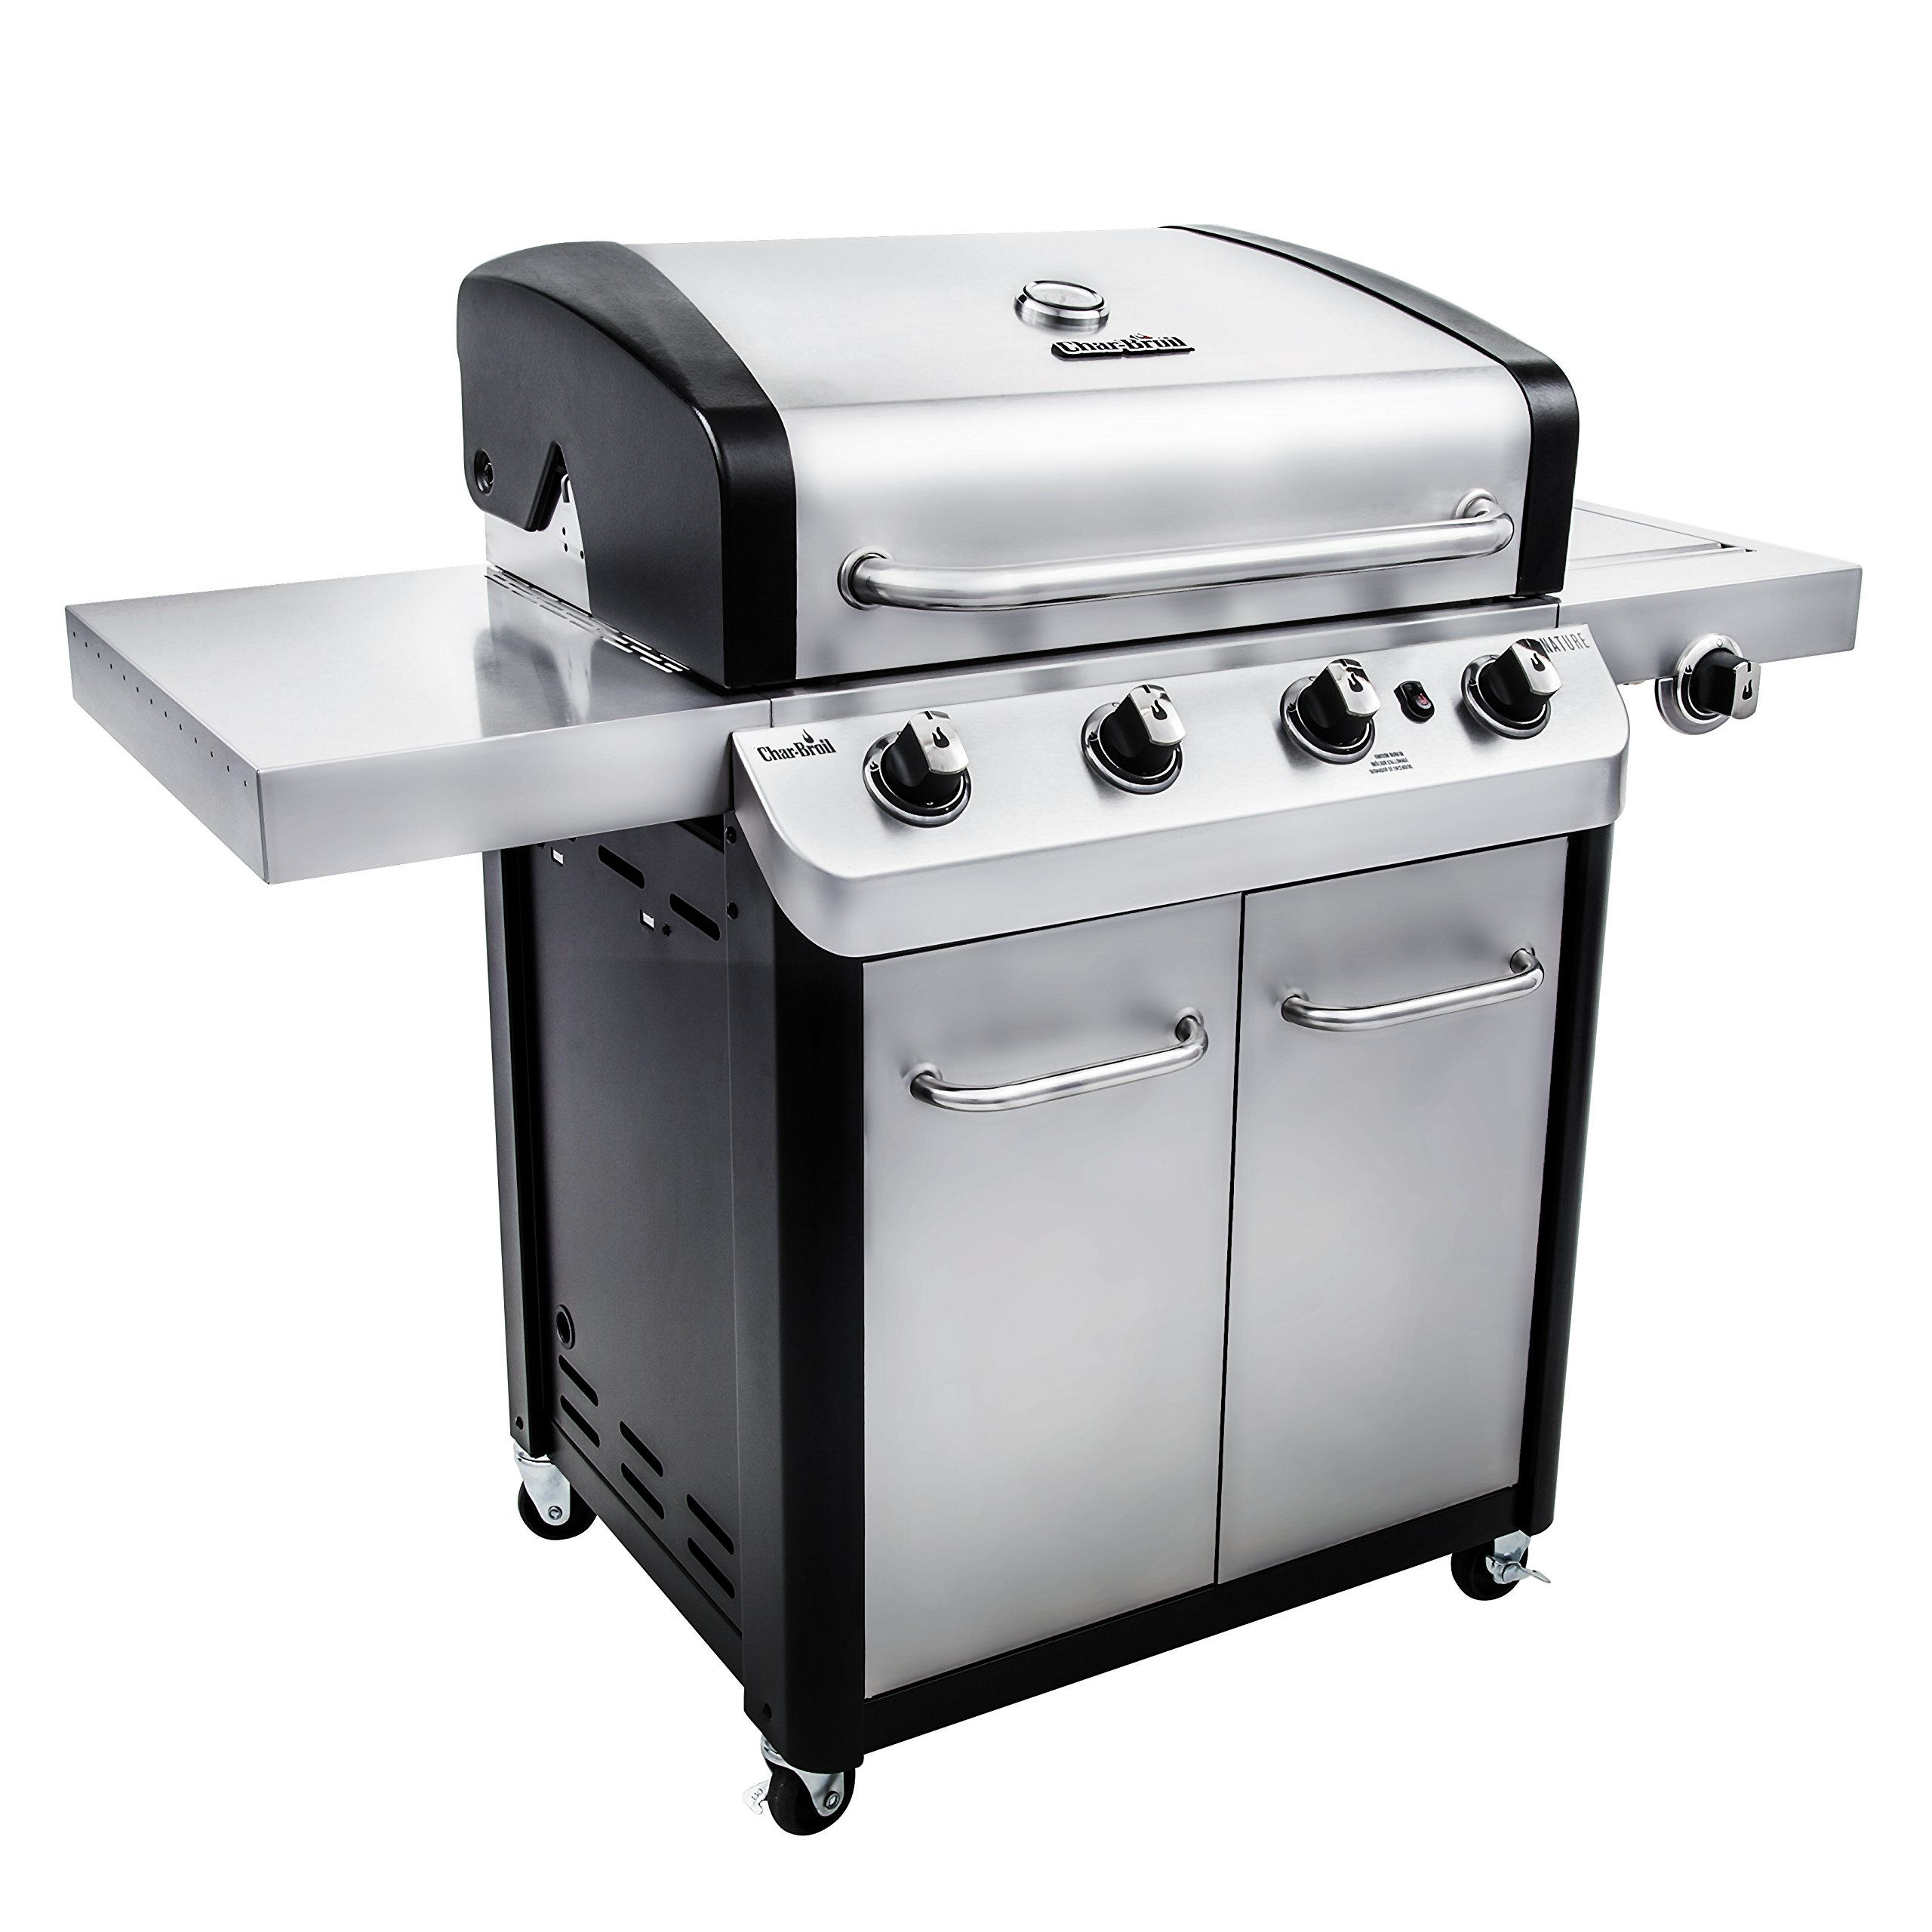 Char-Broil 463277017 Grill, 530, Silver by Char-Broil